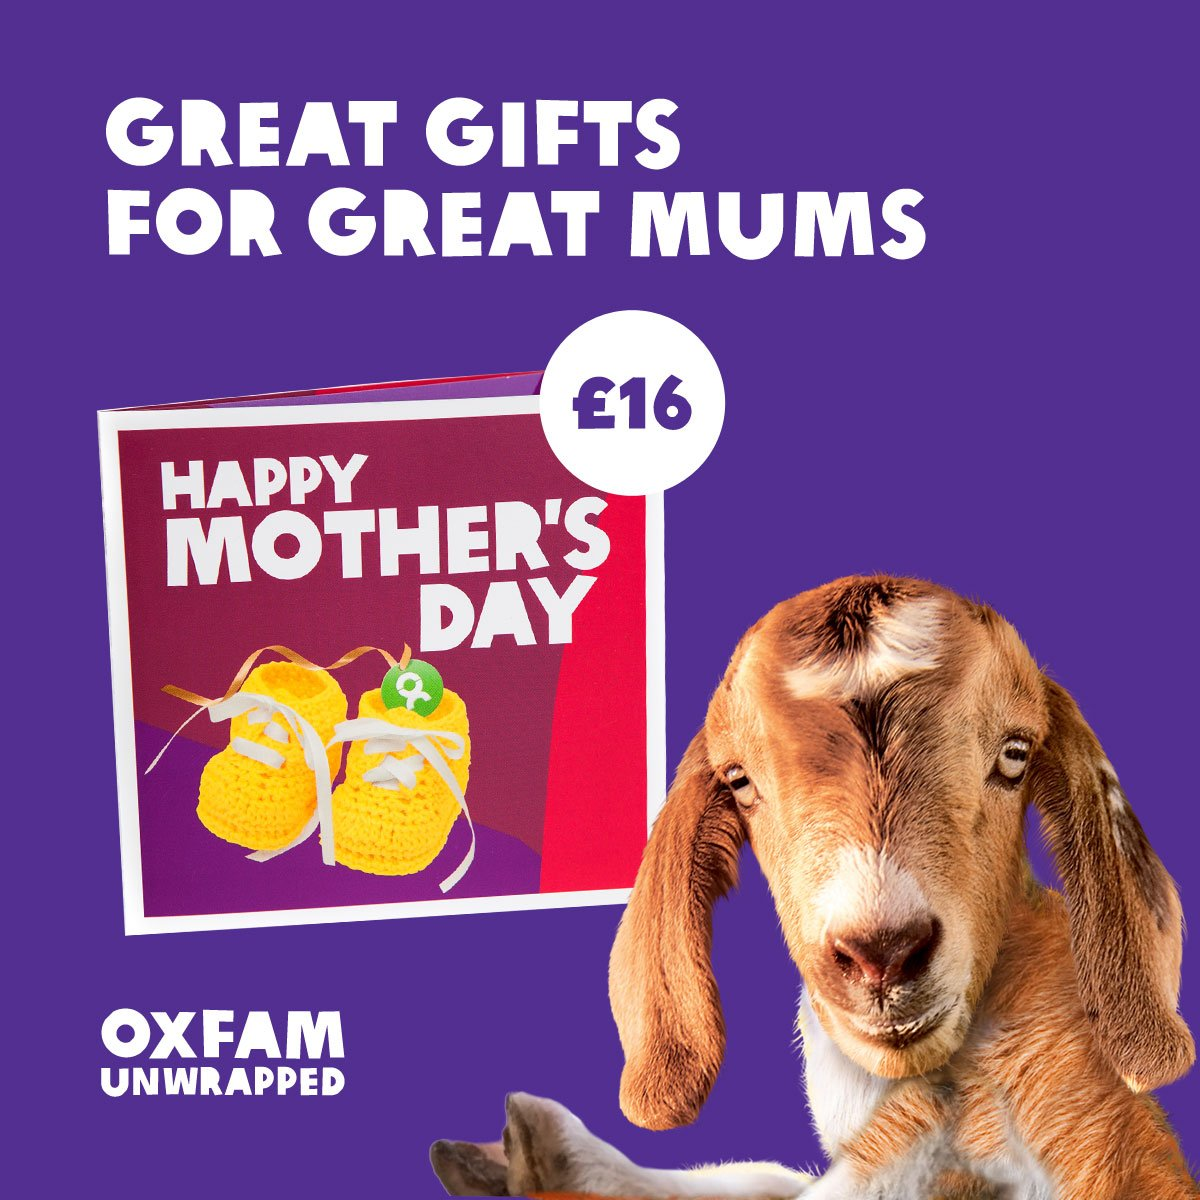 Oxfam Unwrapped charity gifts make perfect last minute gifts! Treat mum to a life changing gift this #MothersDay: ...